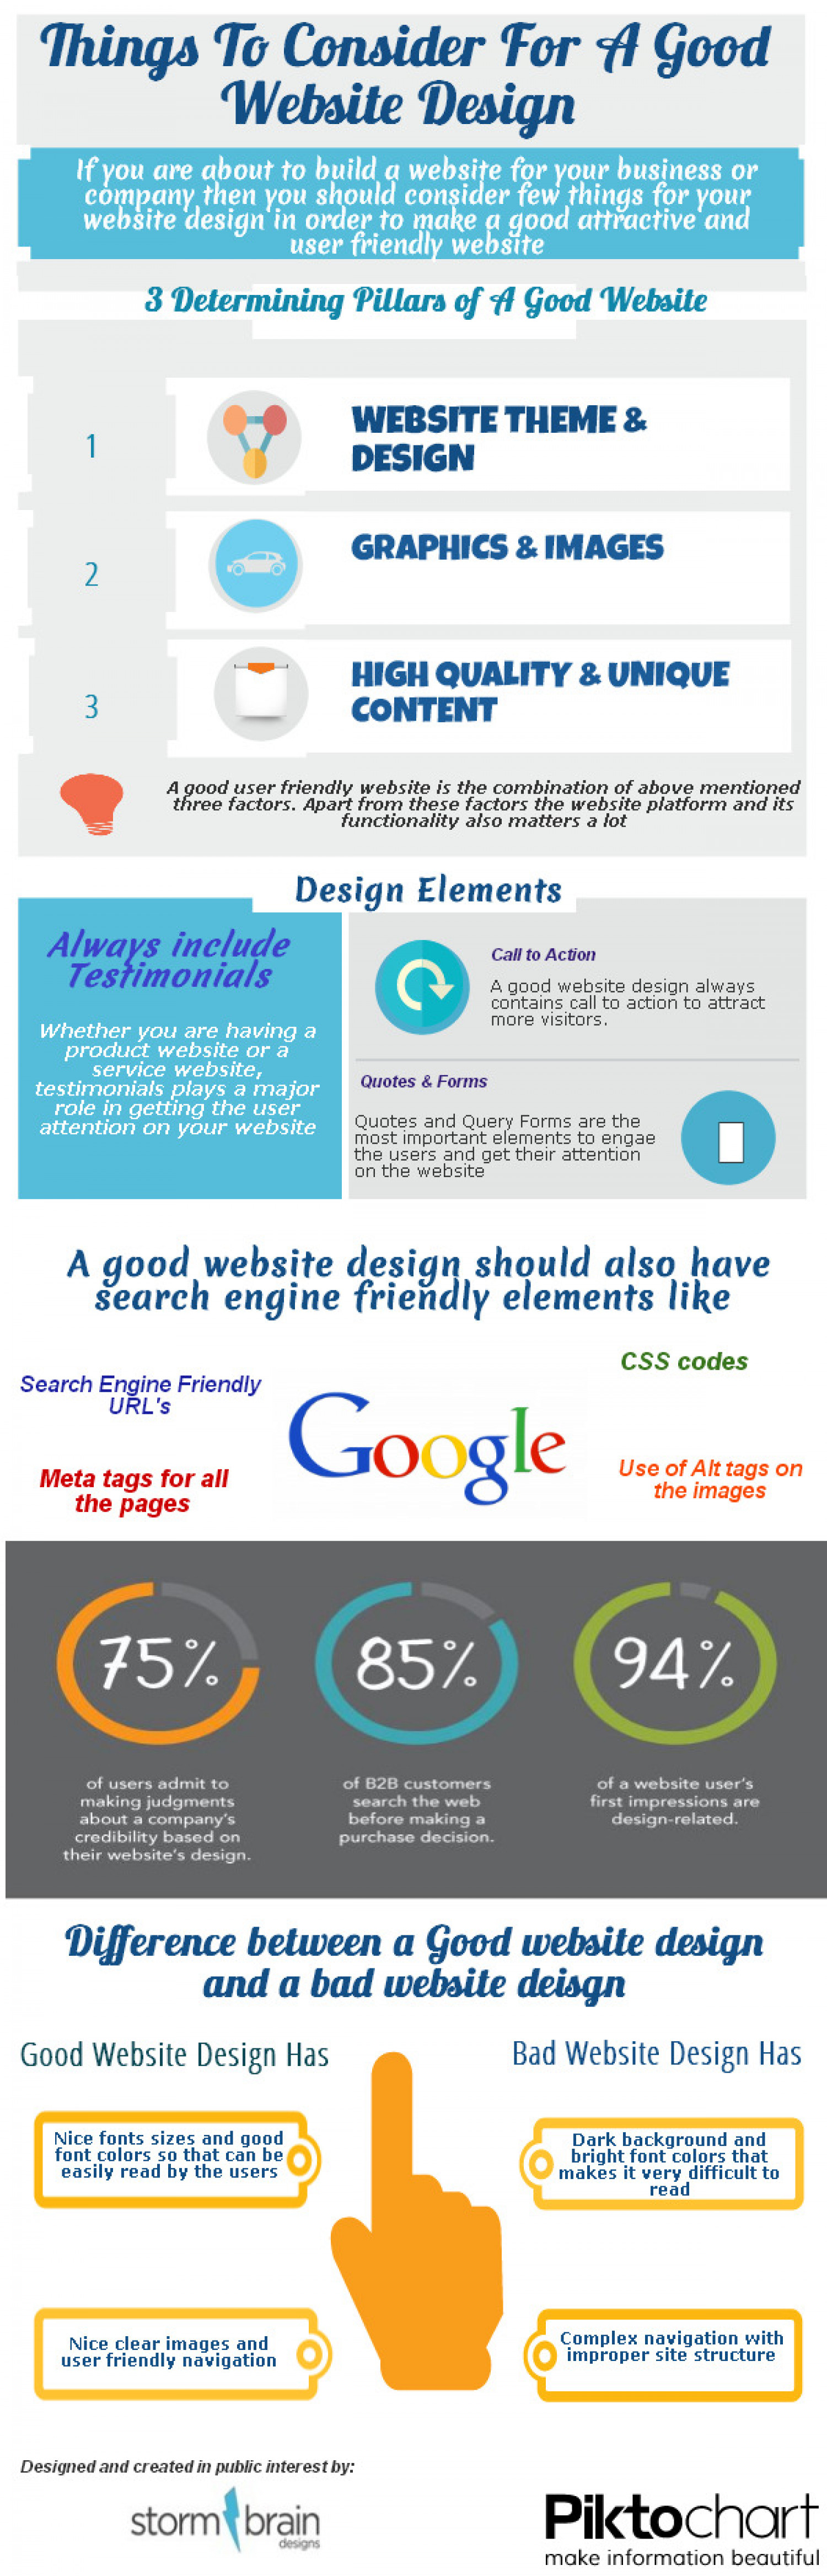 Things to consider for a good website design Infographic